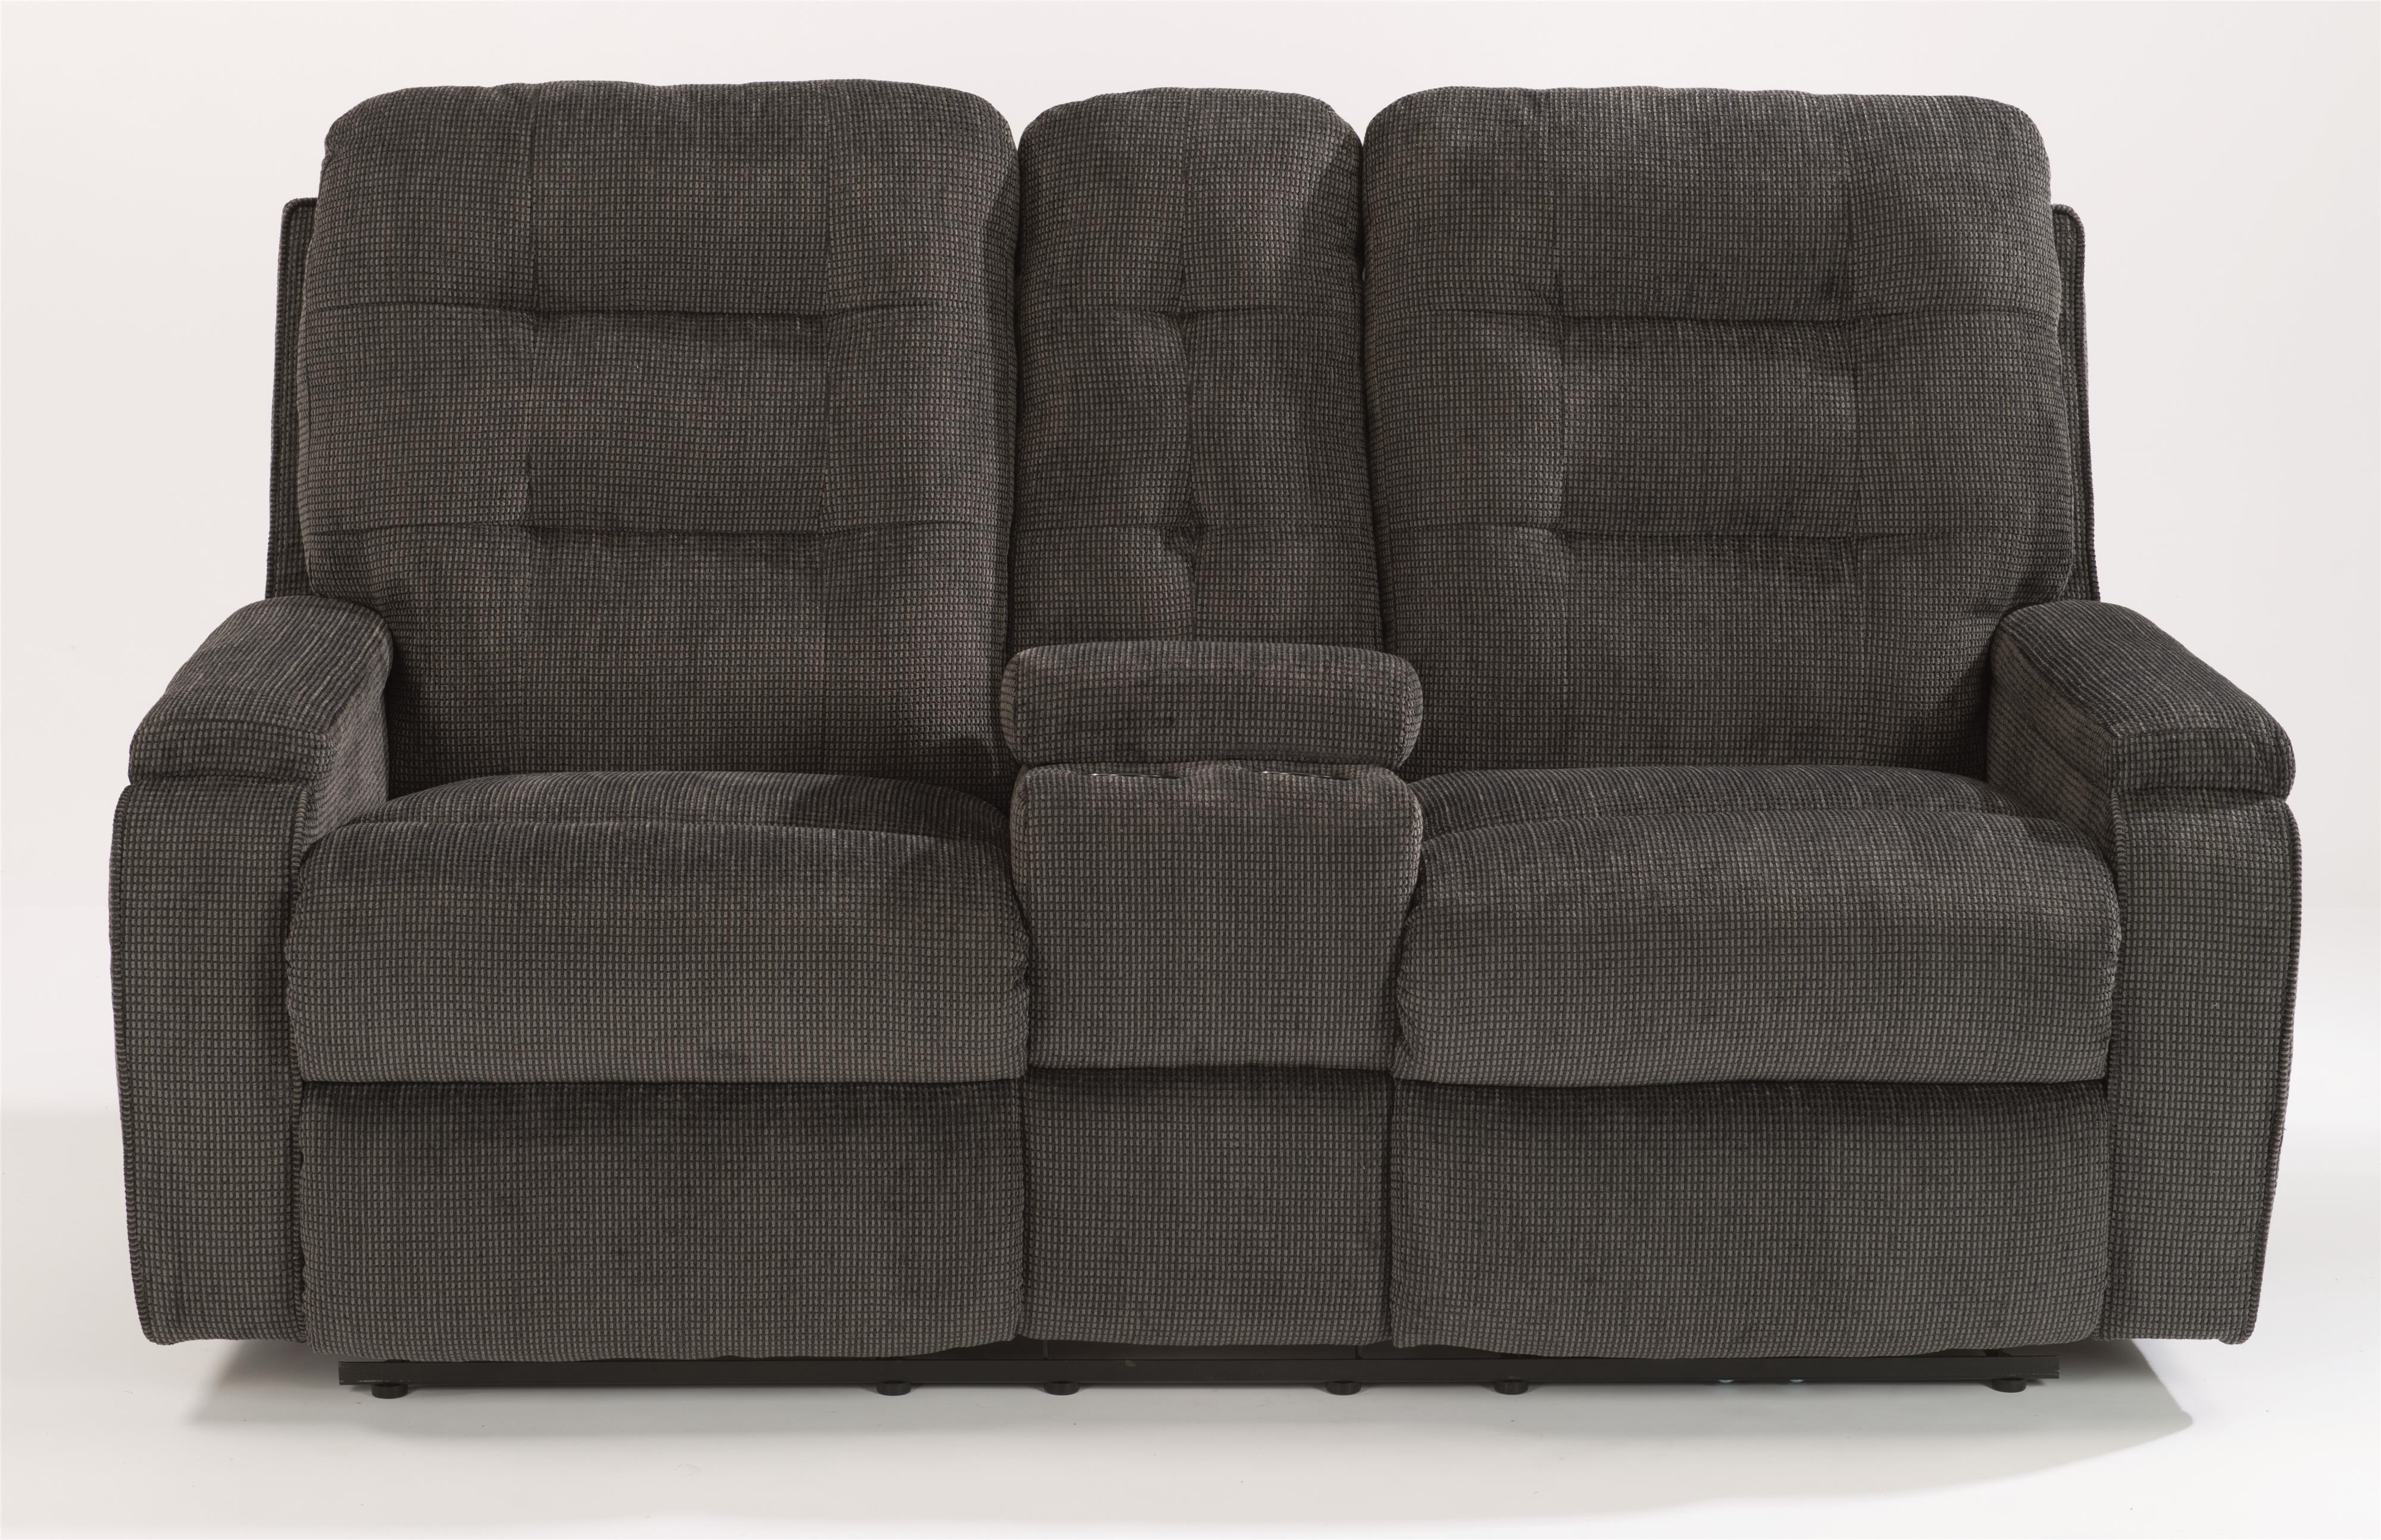 design console item double reclining signature number leather loveseat faux products by w slayton ashley